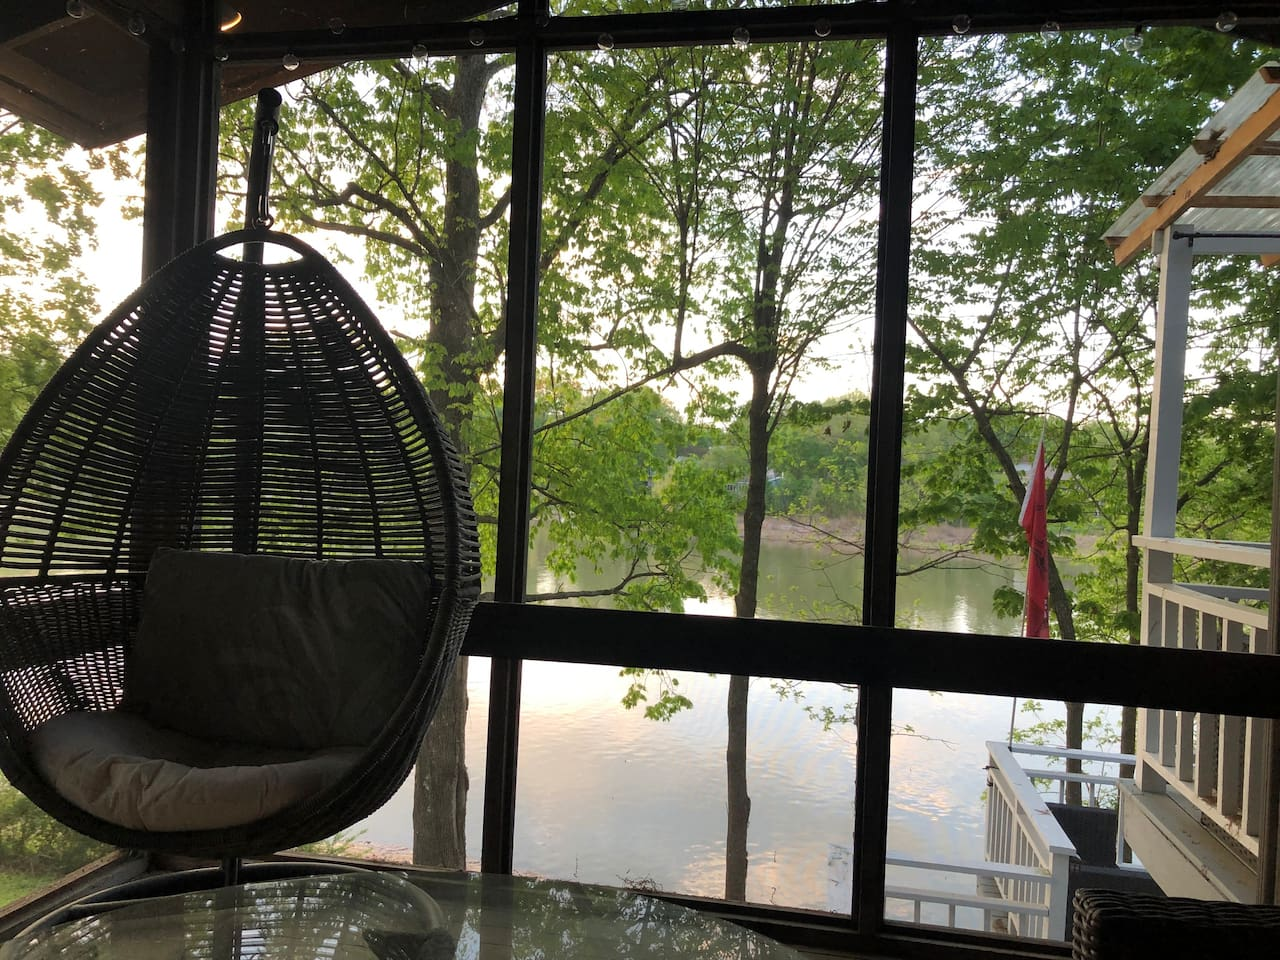 Screened in porch.